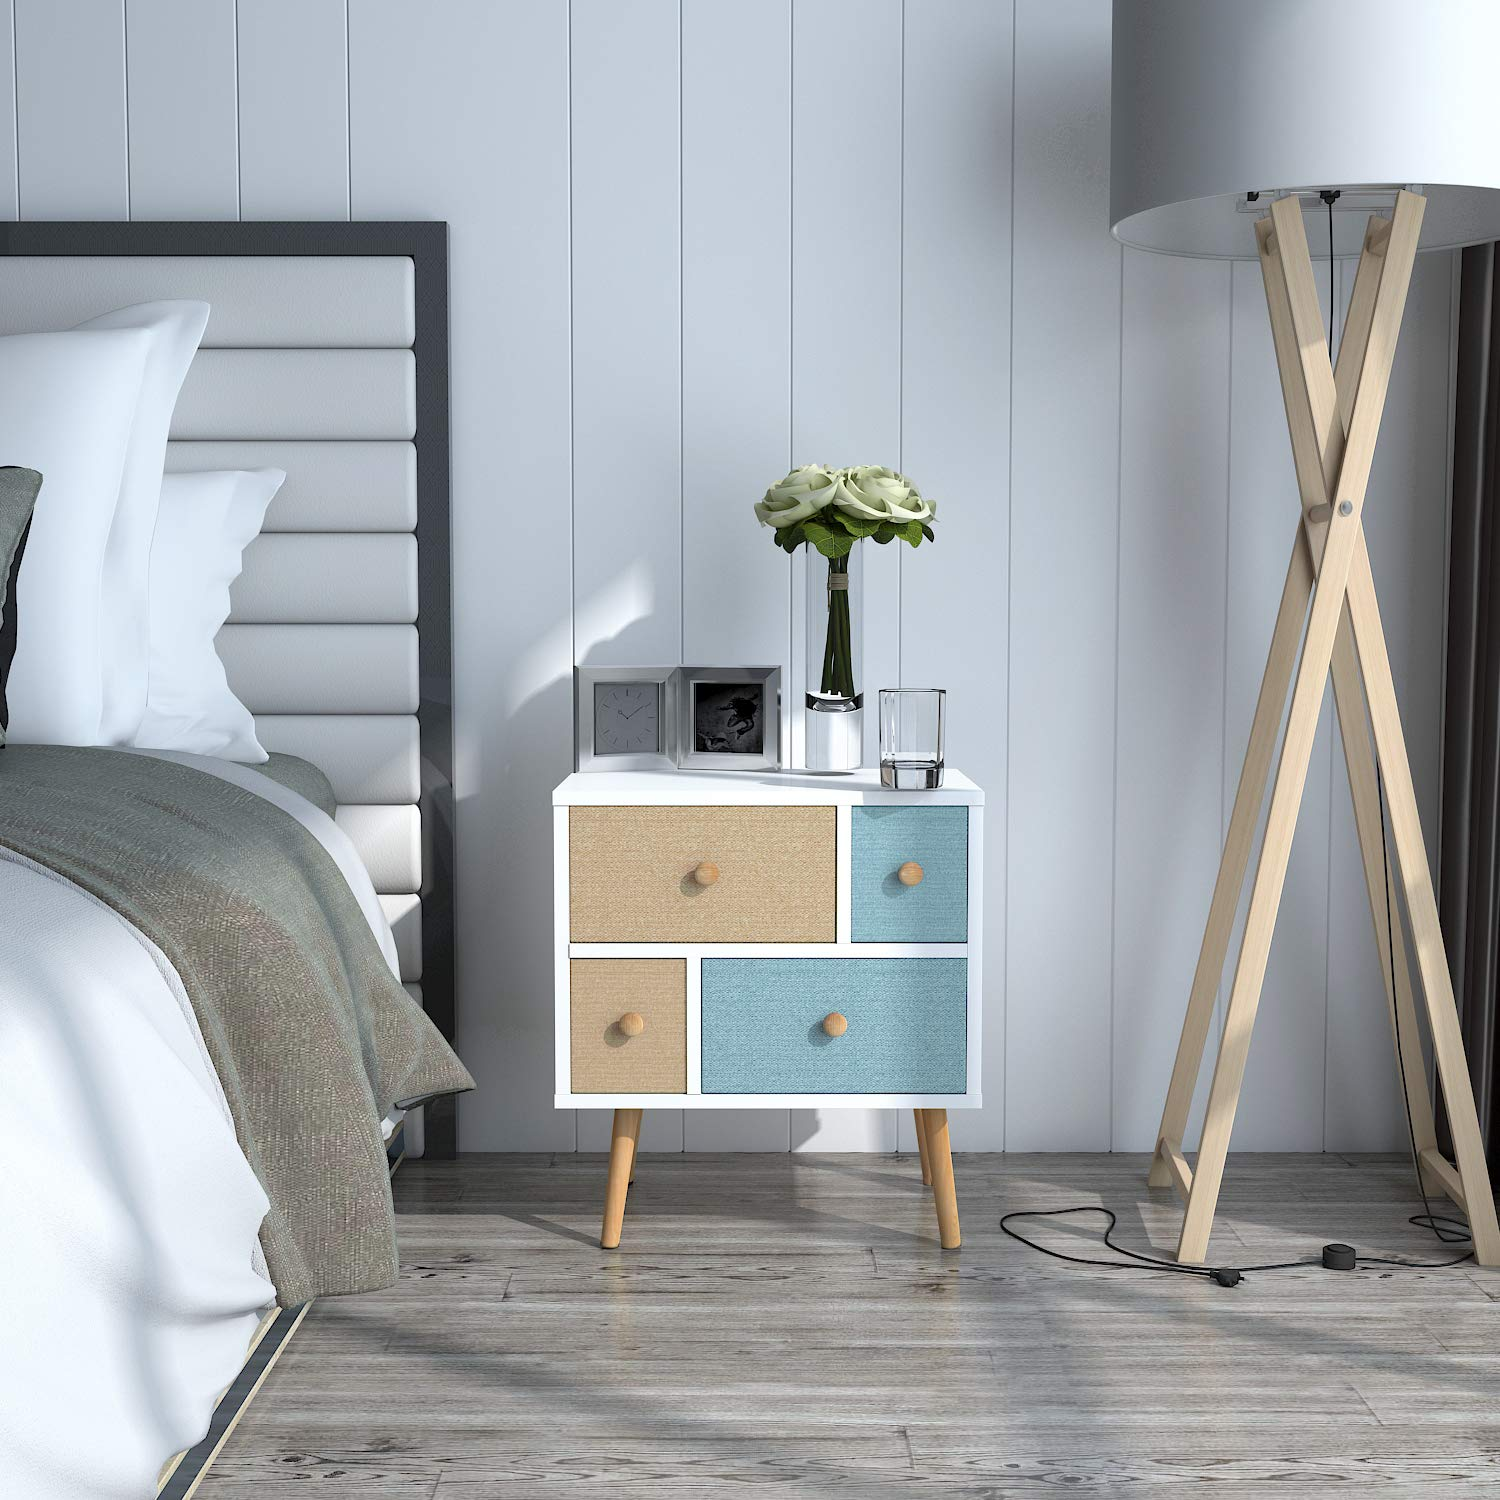 Lifewit Nightstand with 4 Fabric Drawers, Bedroom Side Table Bedside Table, Easy to Assemble, Sturdy and Durable, Small and Cute, White, 18.9 x 11.8 x 21.7 in by Lifewit